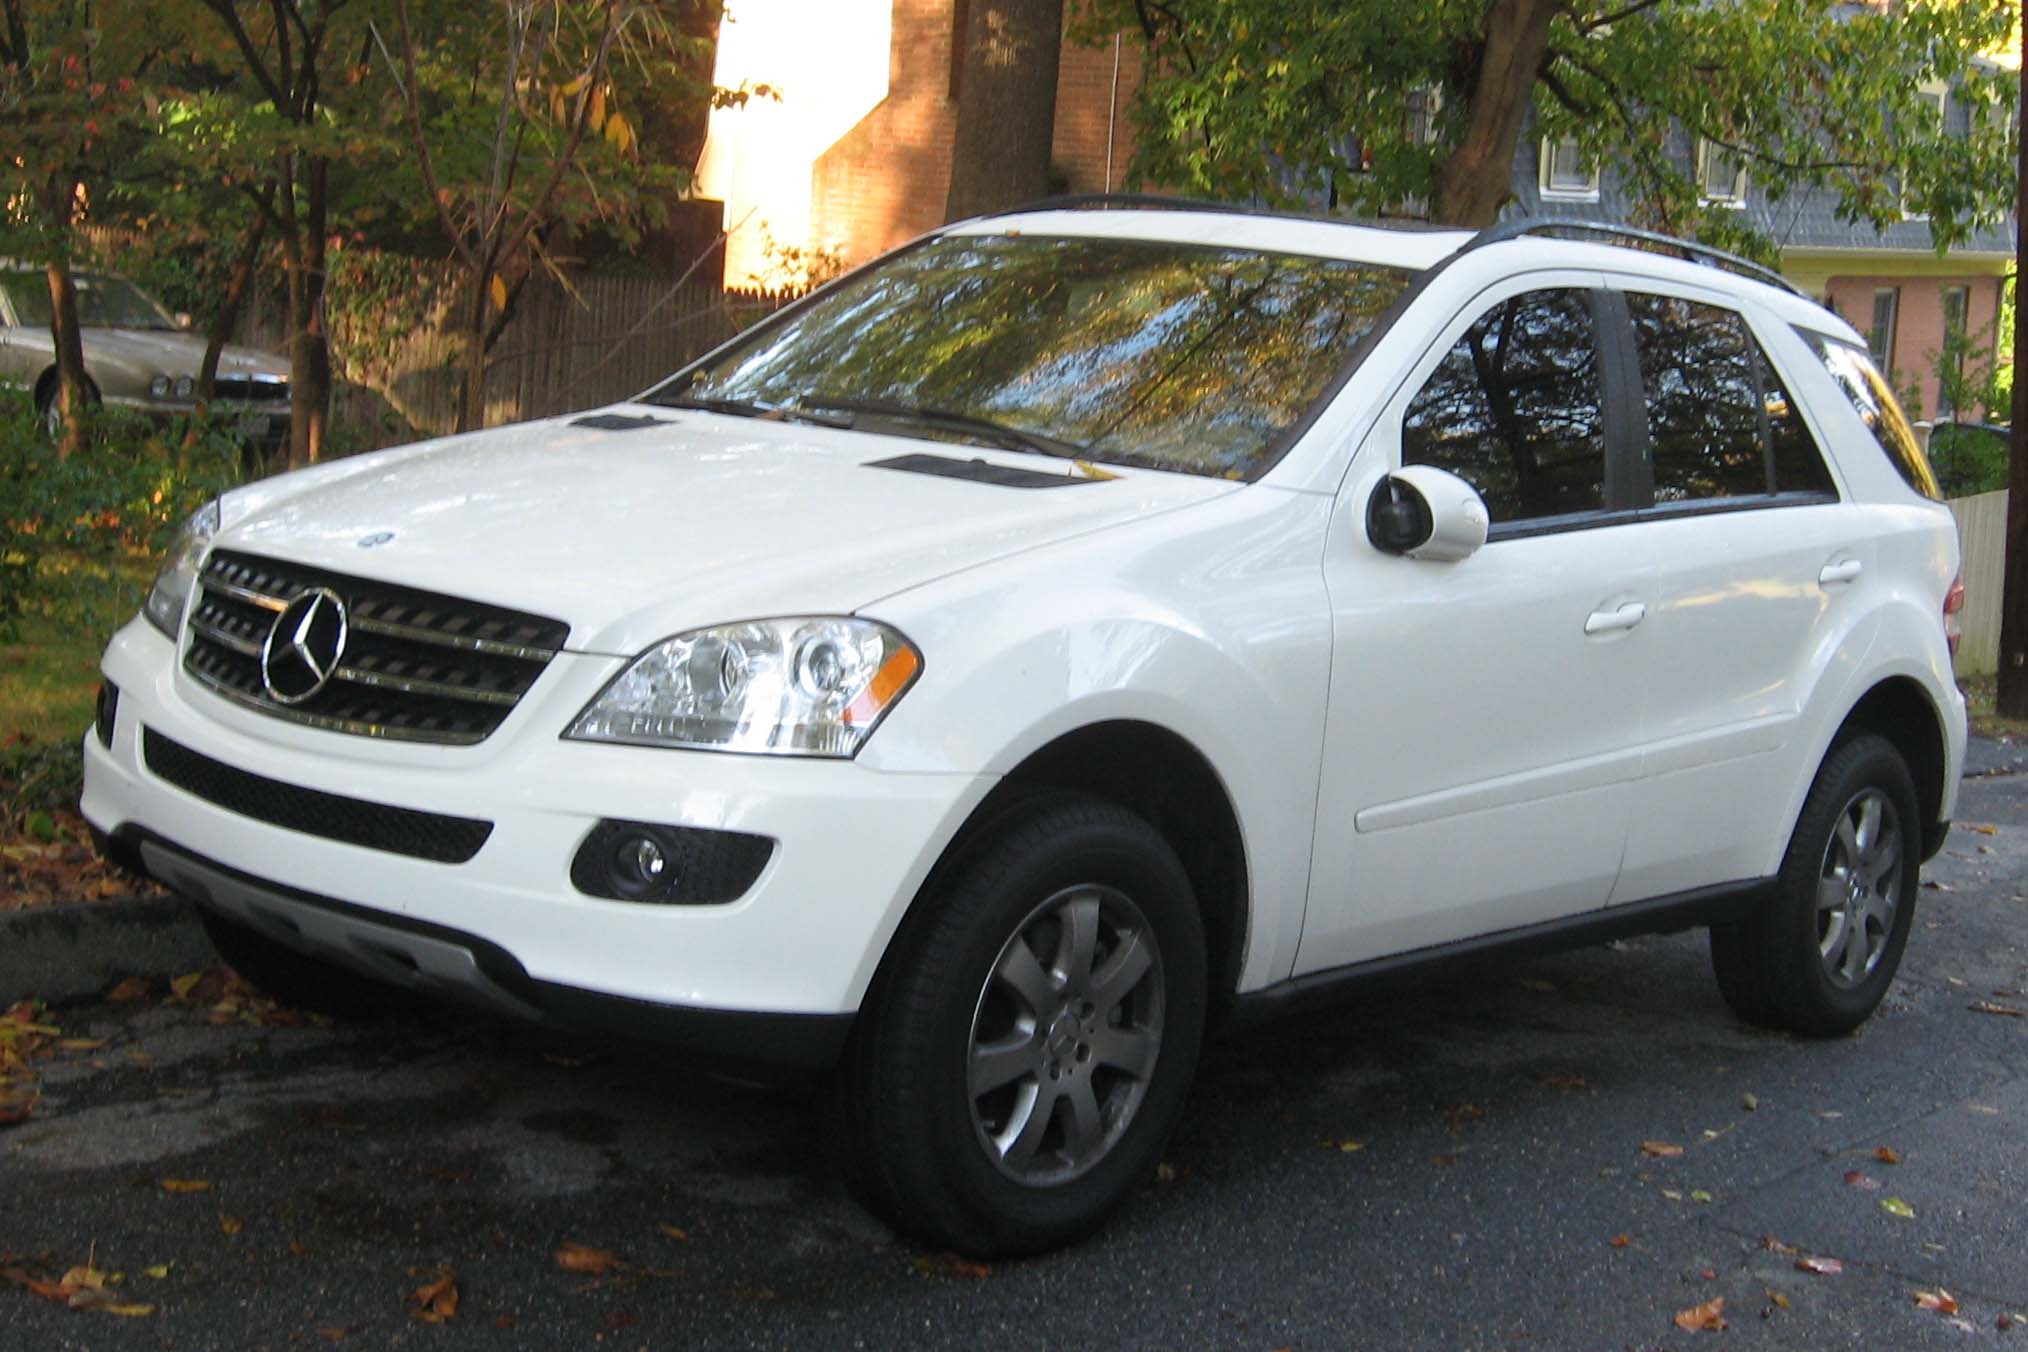 Mercedes benz ML350 2007 Review Amazing and – Look